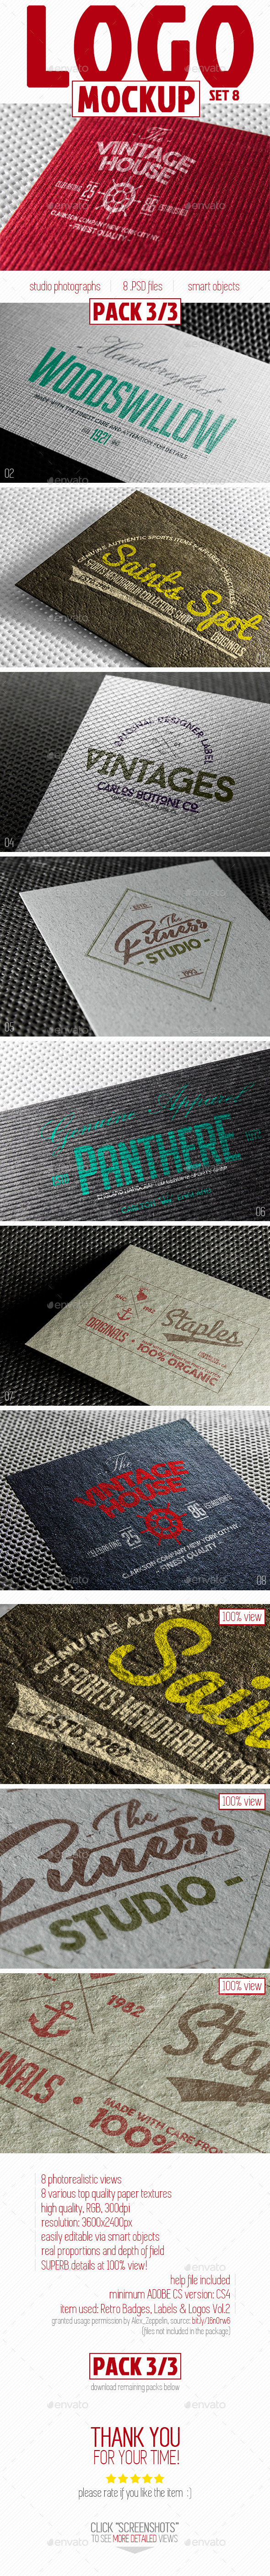 GraphicRiver Complete Paper Logo Mock-Up Pack 3 3 10329365